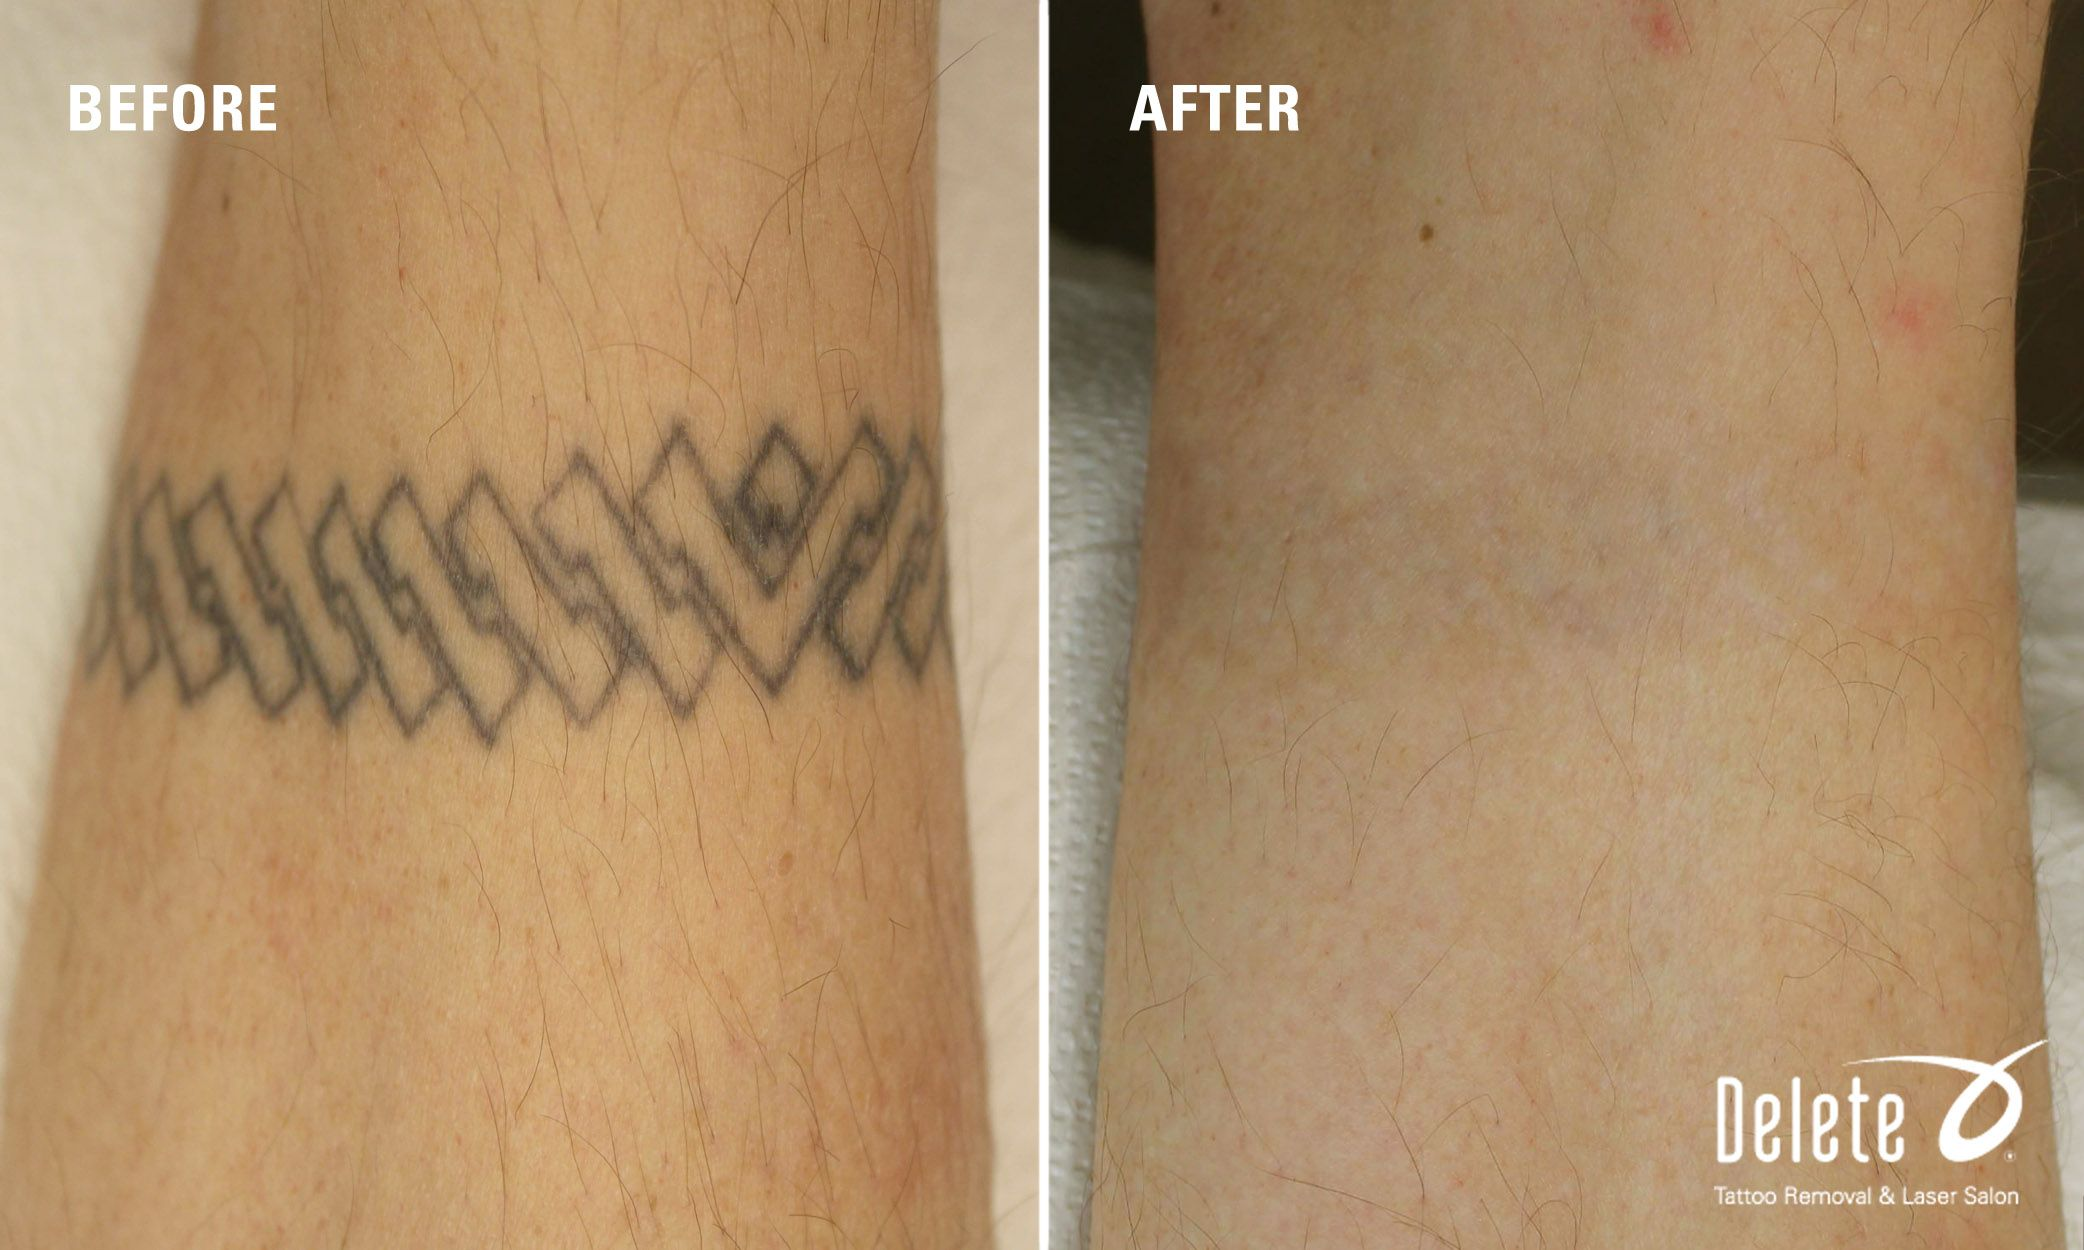 Happy Monday Today S Before After Tattoo Removal Photo Is A Bracelet Tattoo Removed From Our Patient S Wrist What Laser Tattoo Cool Tattoos Tattoo Removal